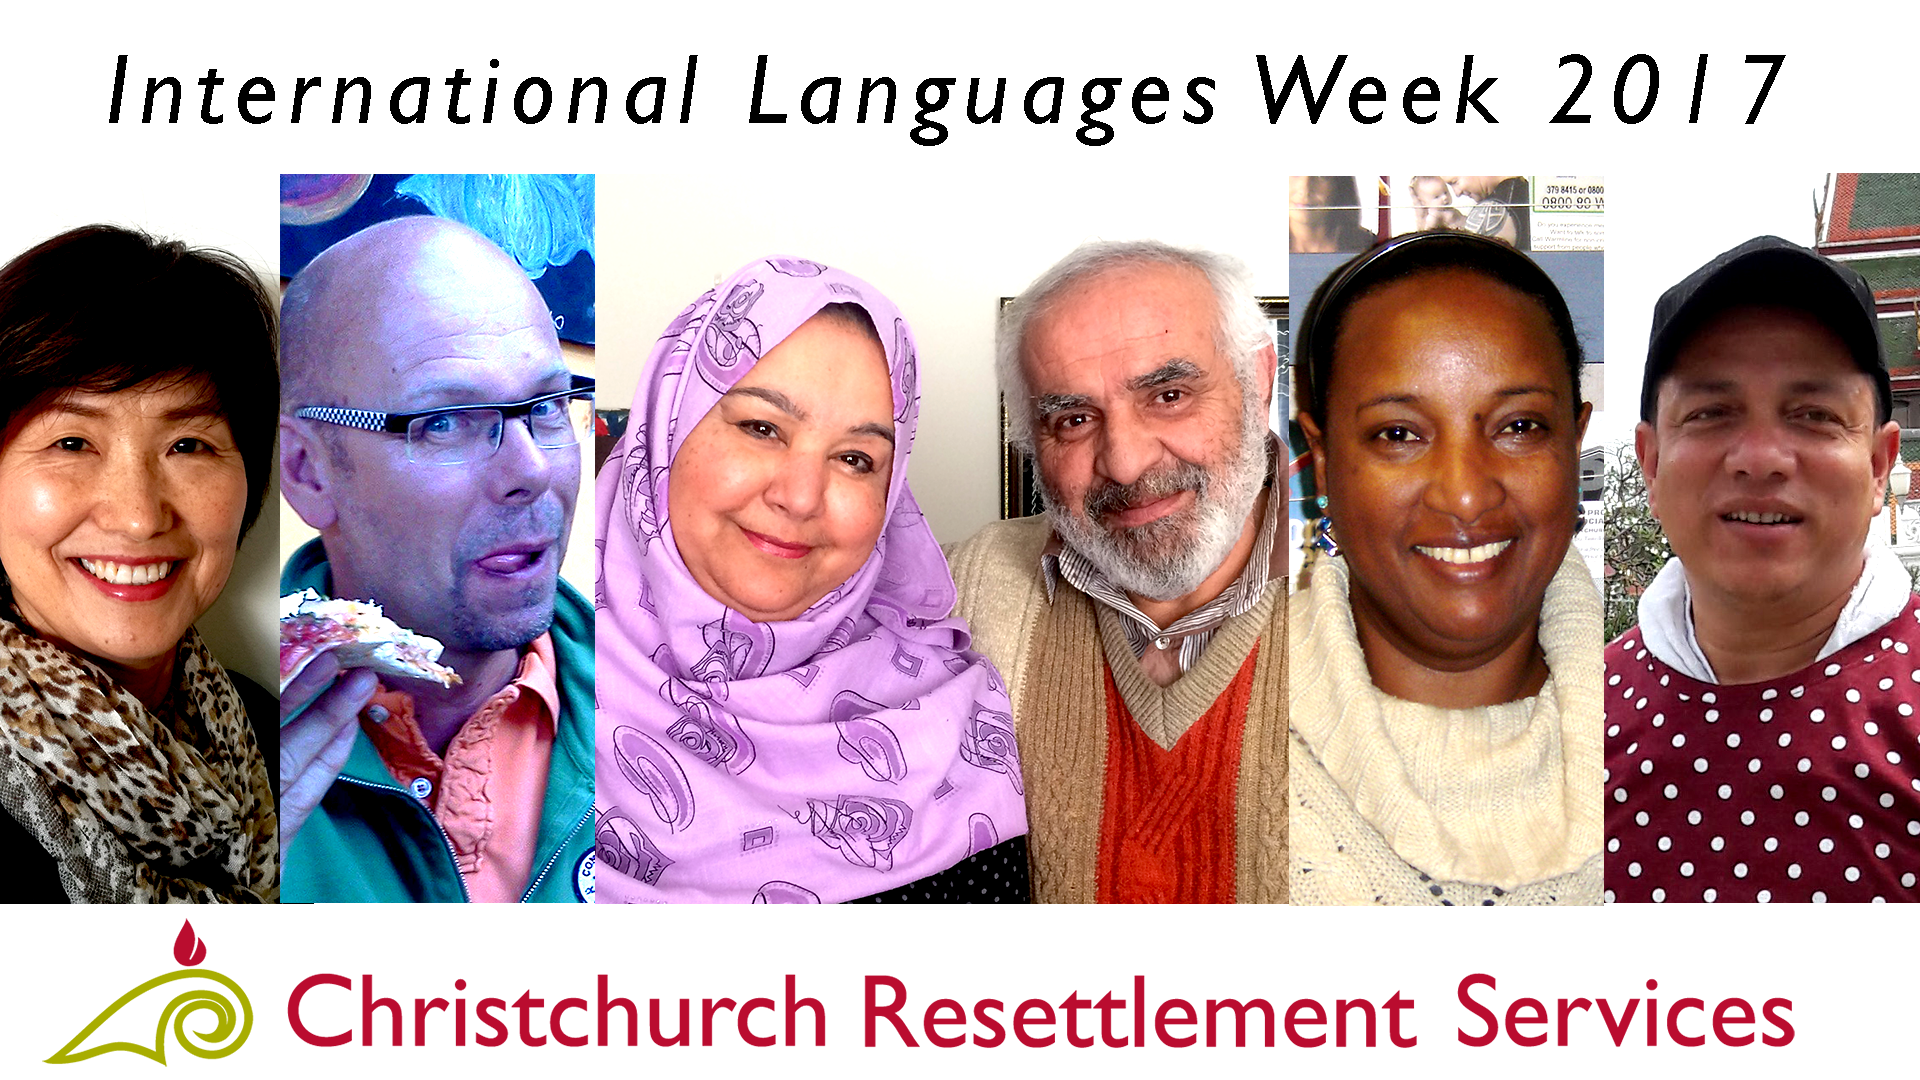 International Languages Week 2017